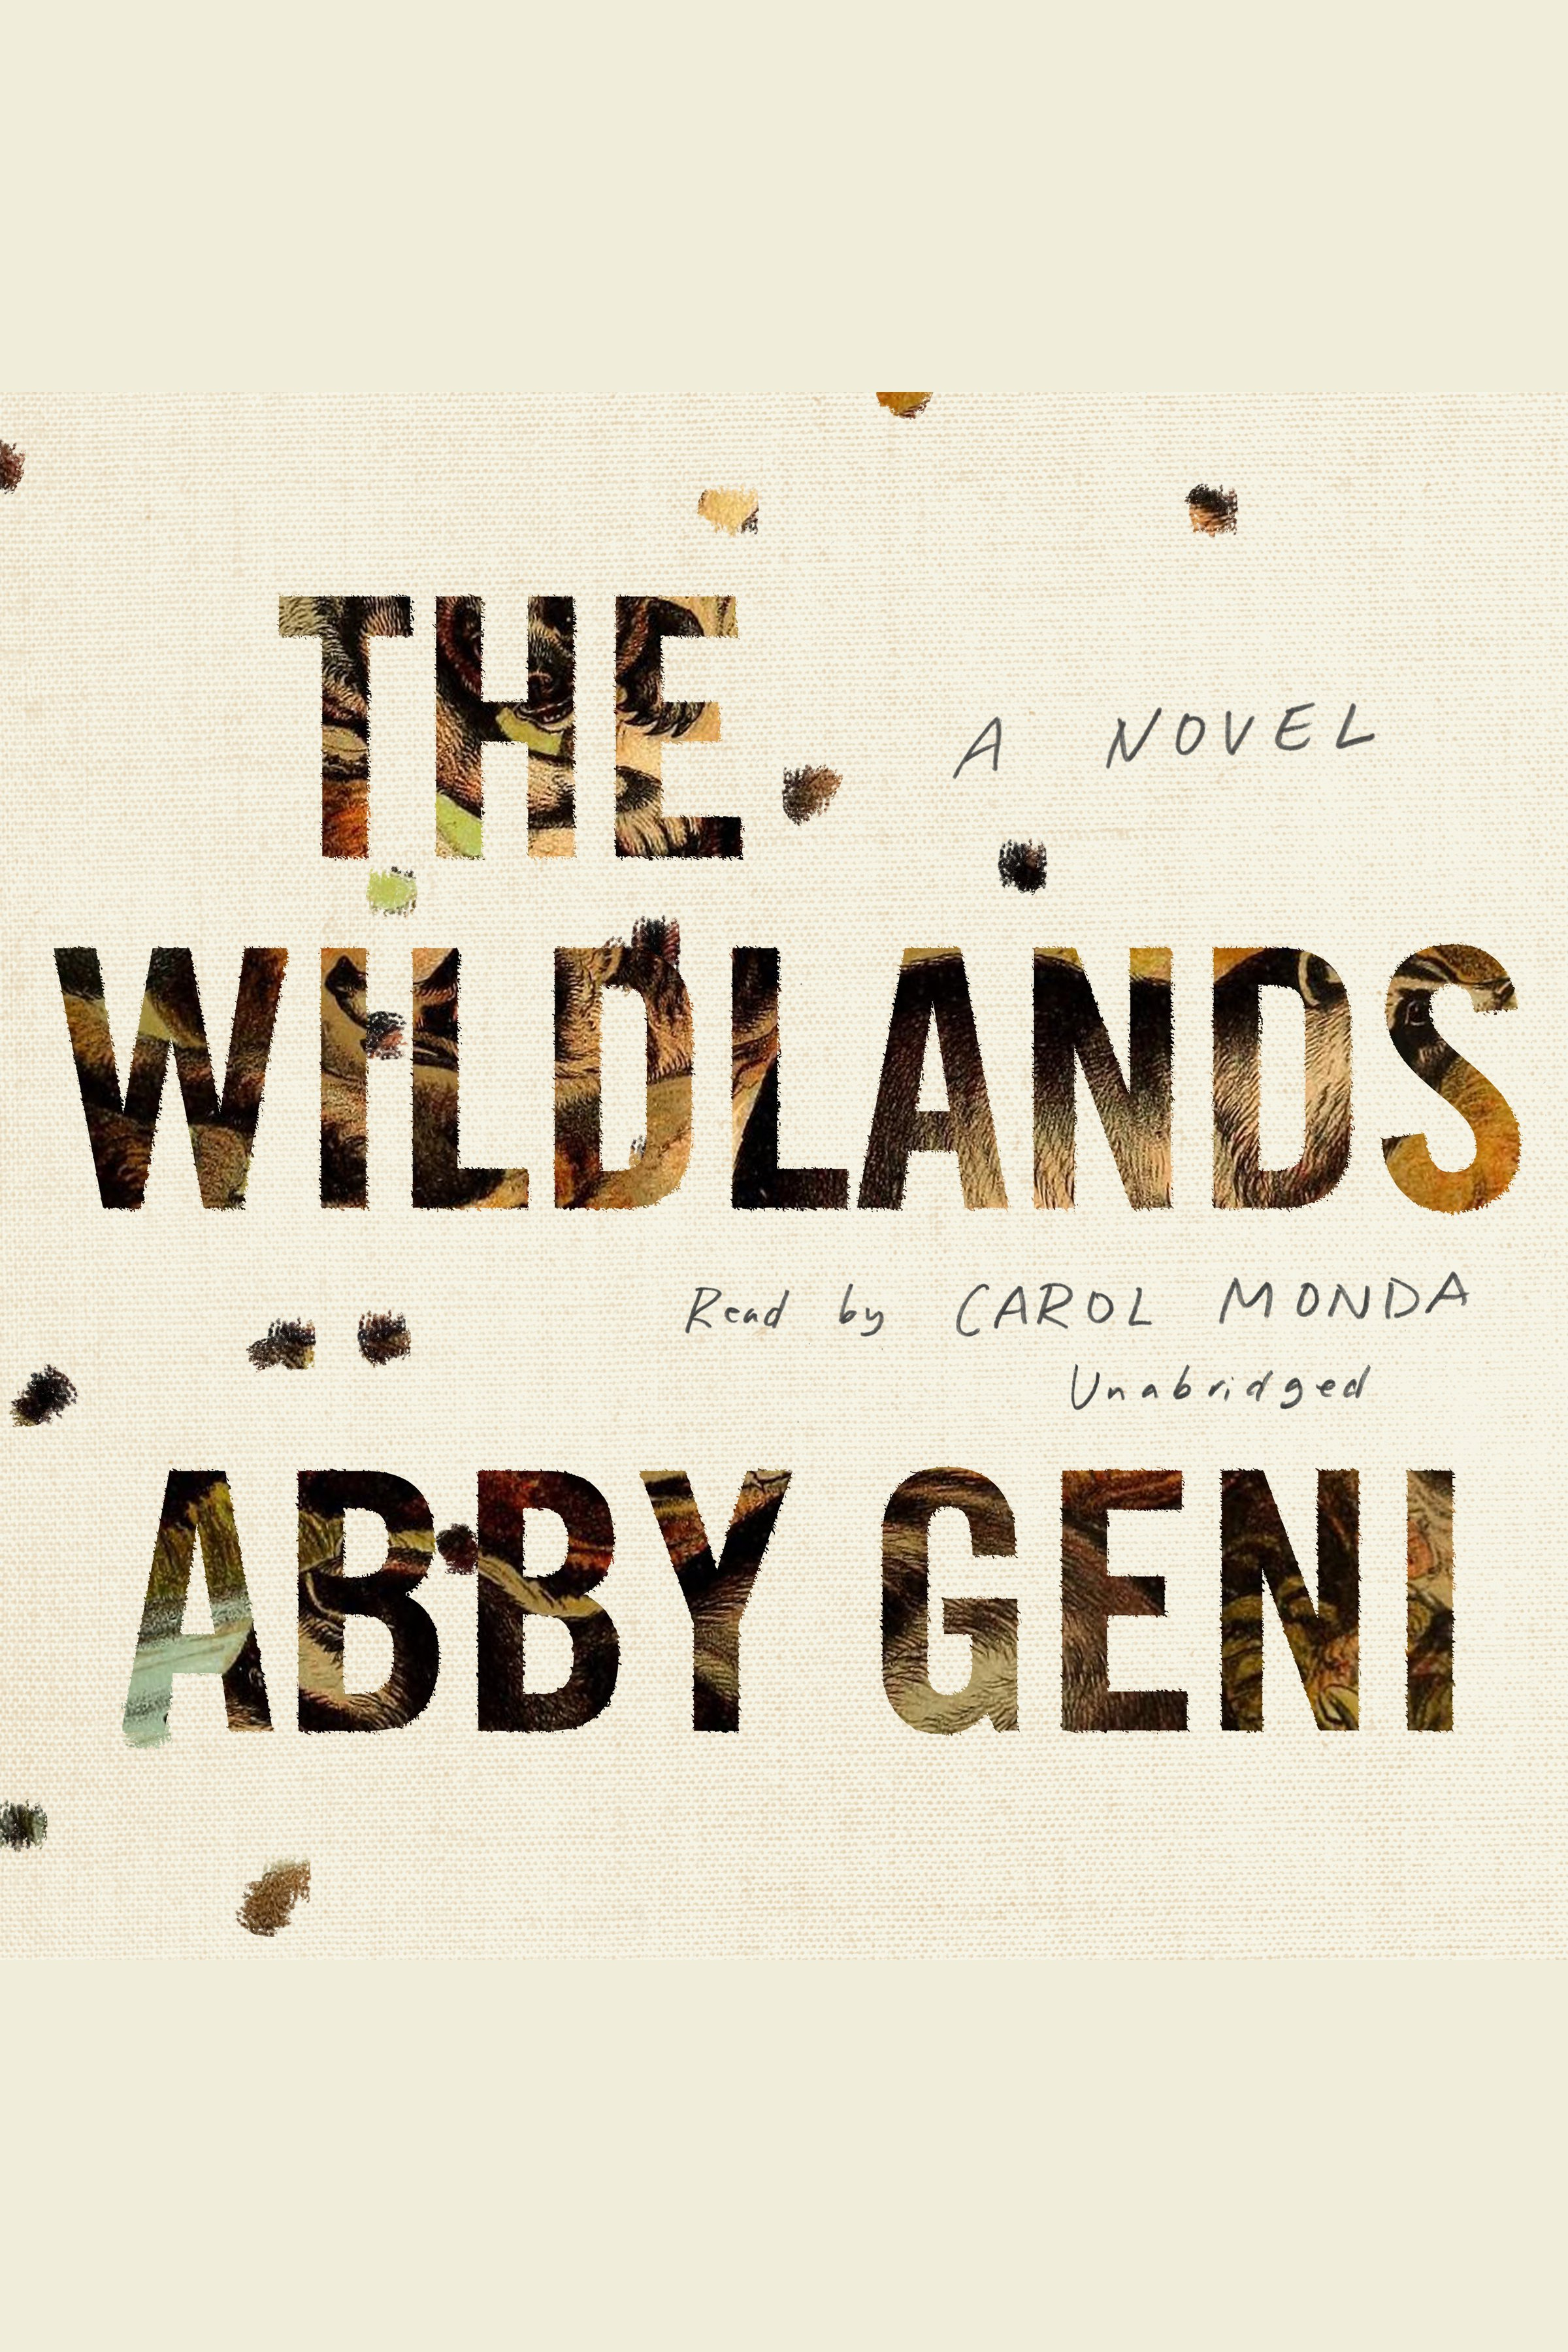 Wildlands, The [electronic resource] : A Novel